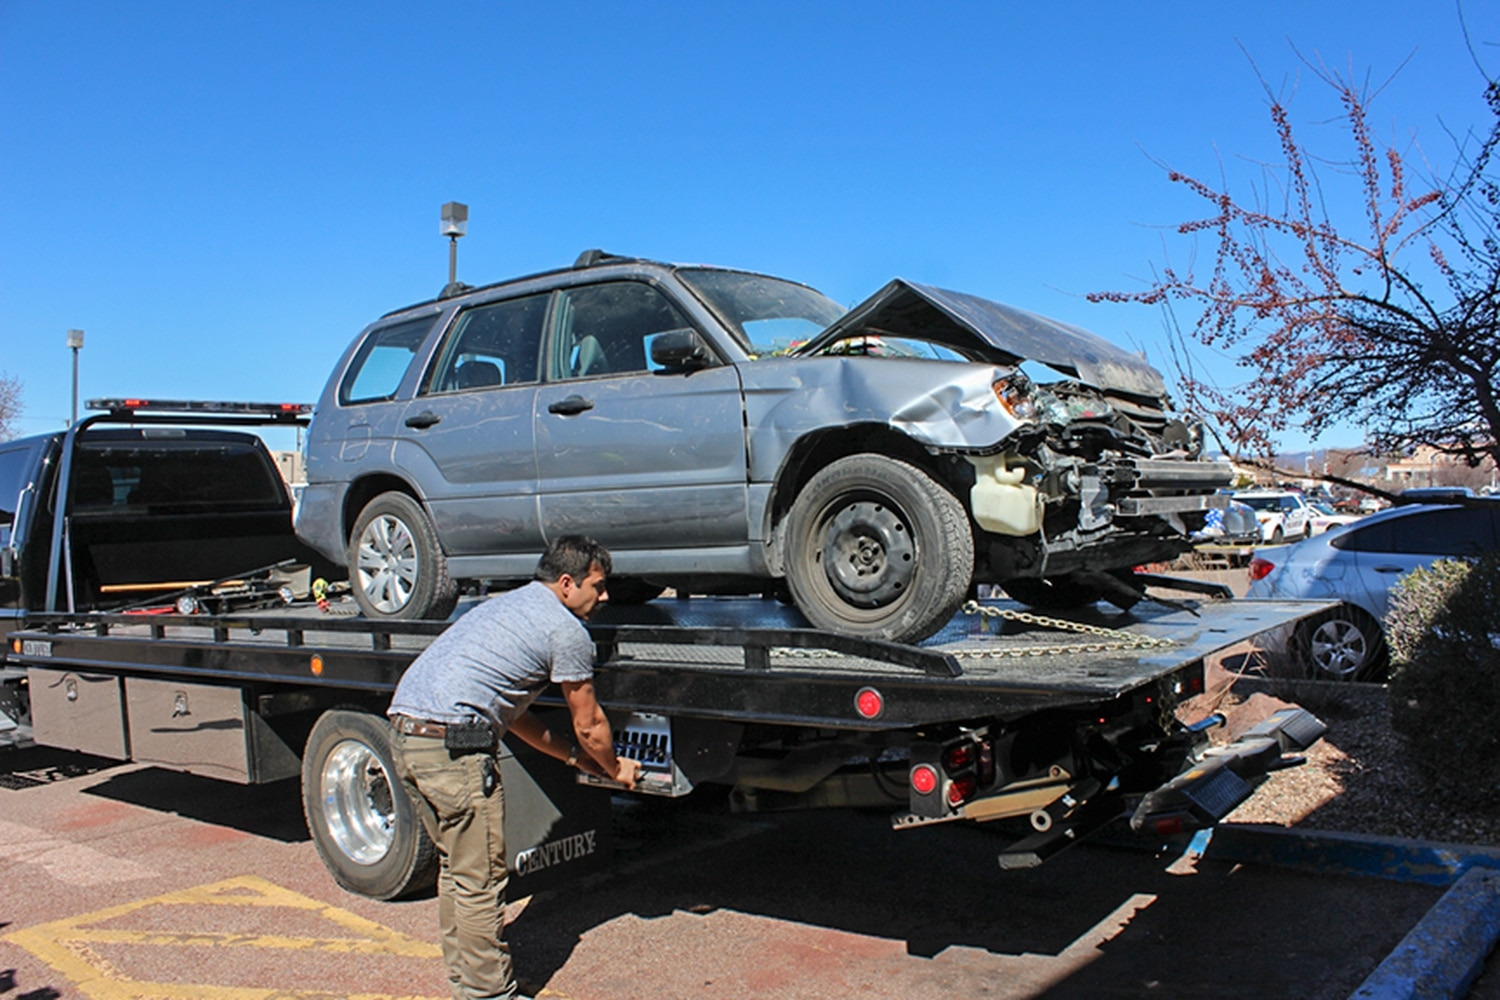 Police say the woman driving this Subaru backed into two cars before driving into Jambo. Matt Grubs